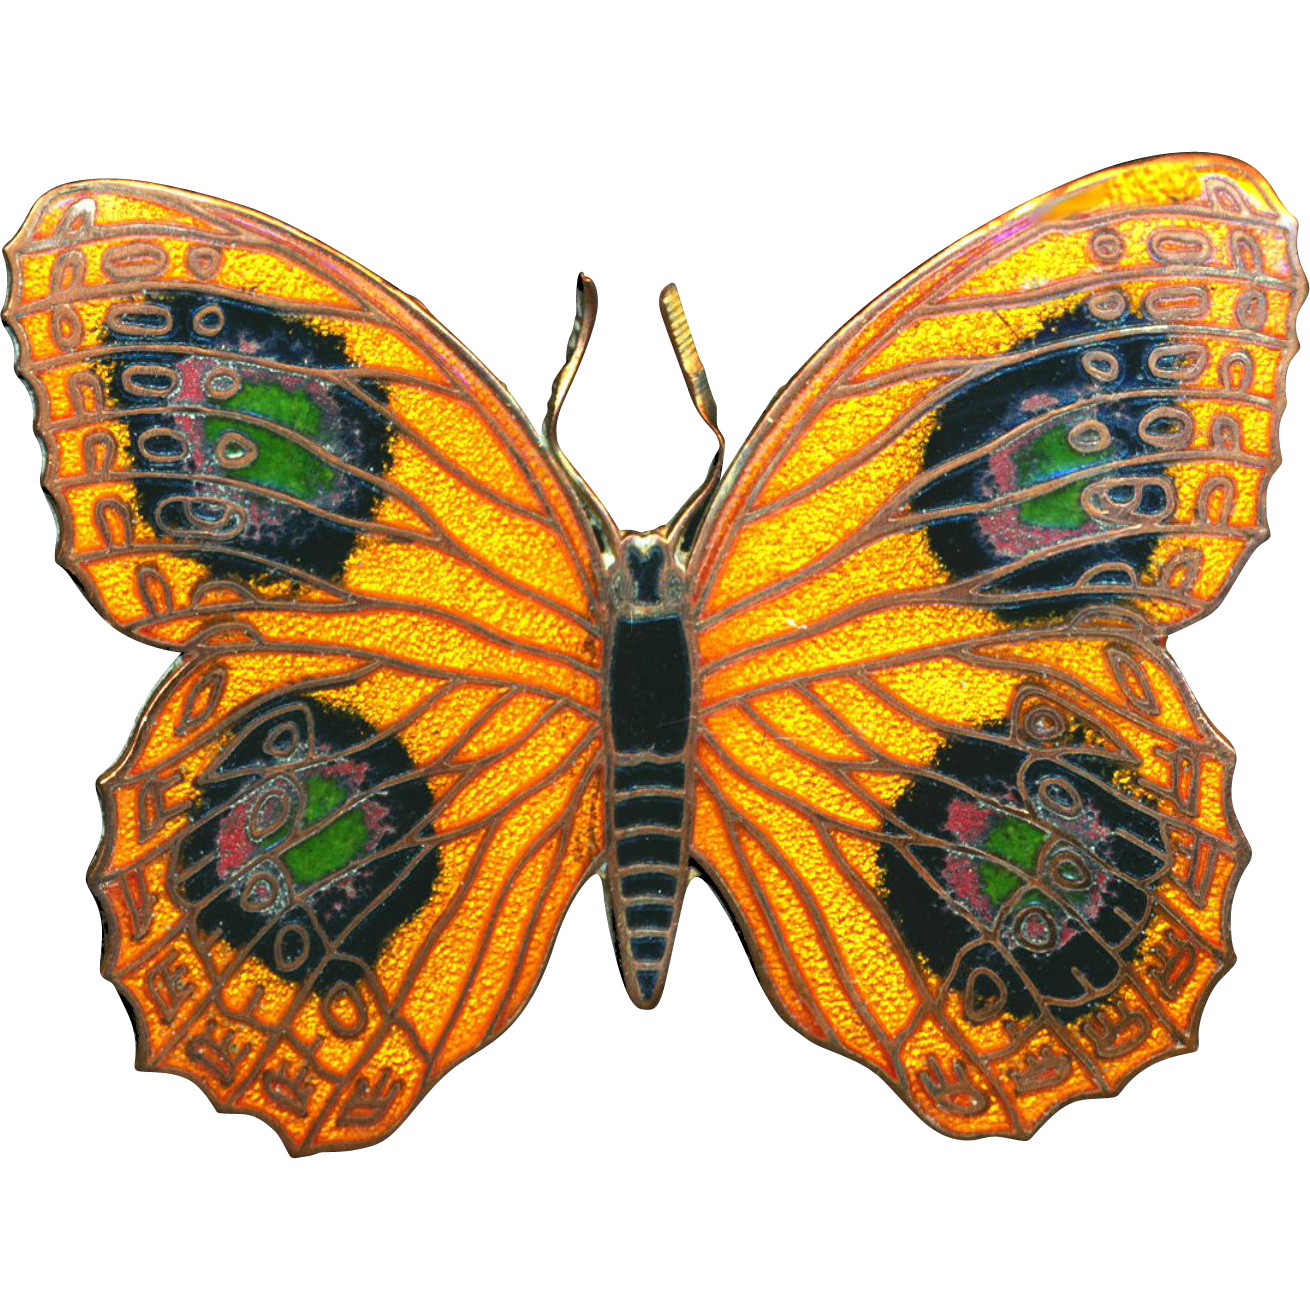 Brooch--Large Champleve Enamel on Copper Butterfly or Moth